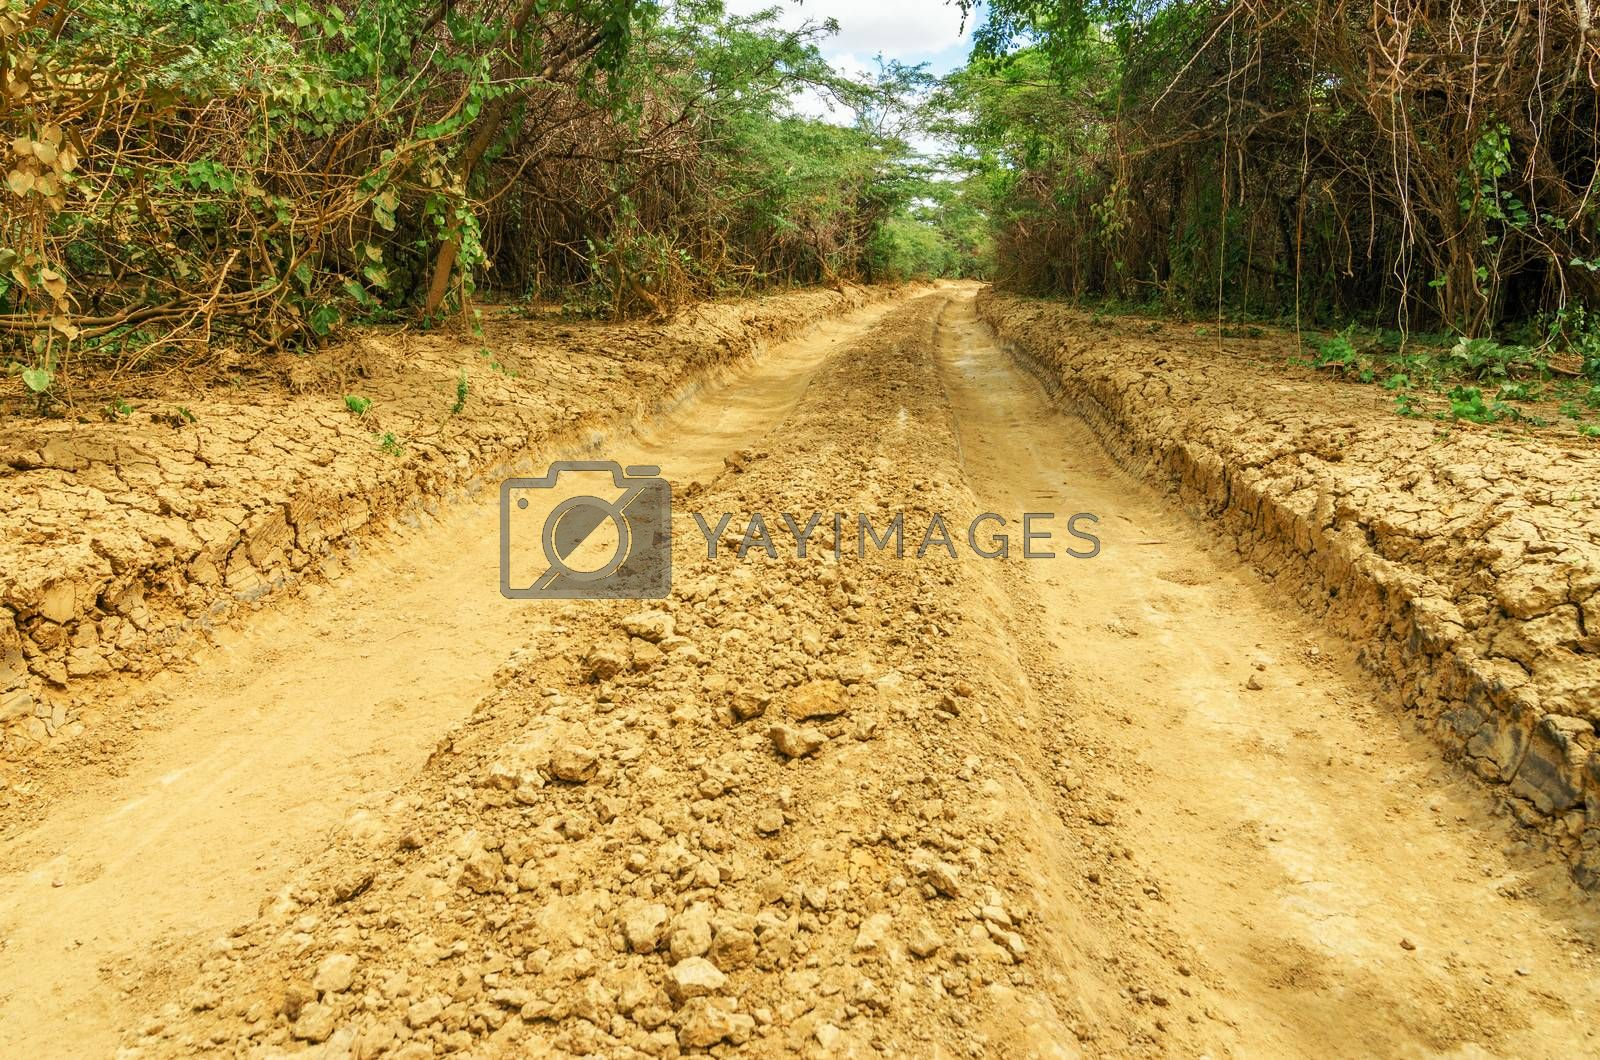 A rough dirt road passing through trees in an arid region in La Guajira, Colombia